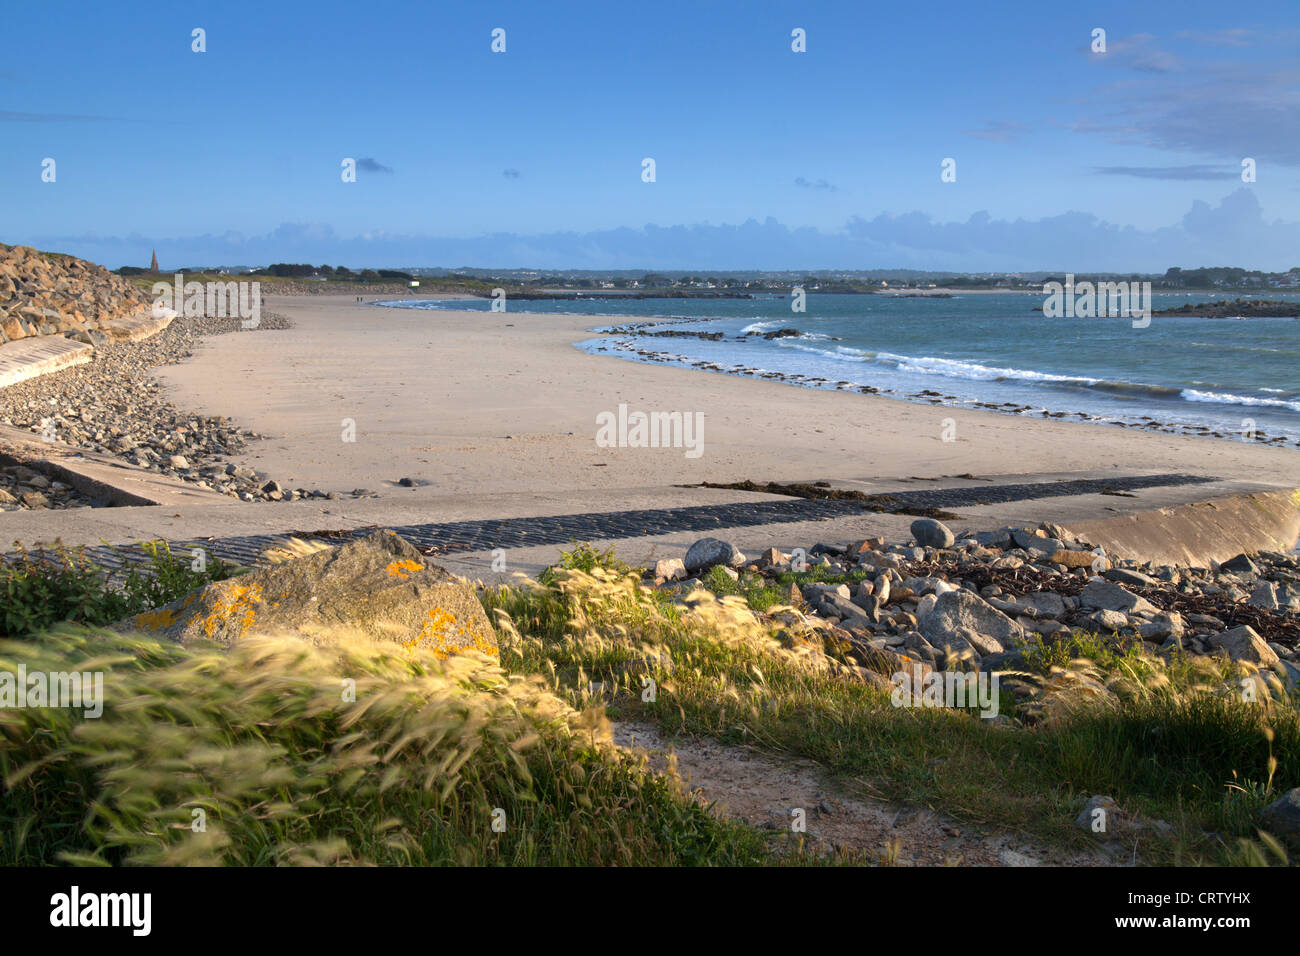 Ladies Bay, Le Grand Havre, Guernsey, Channel Isles, UK - Stock Image